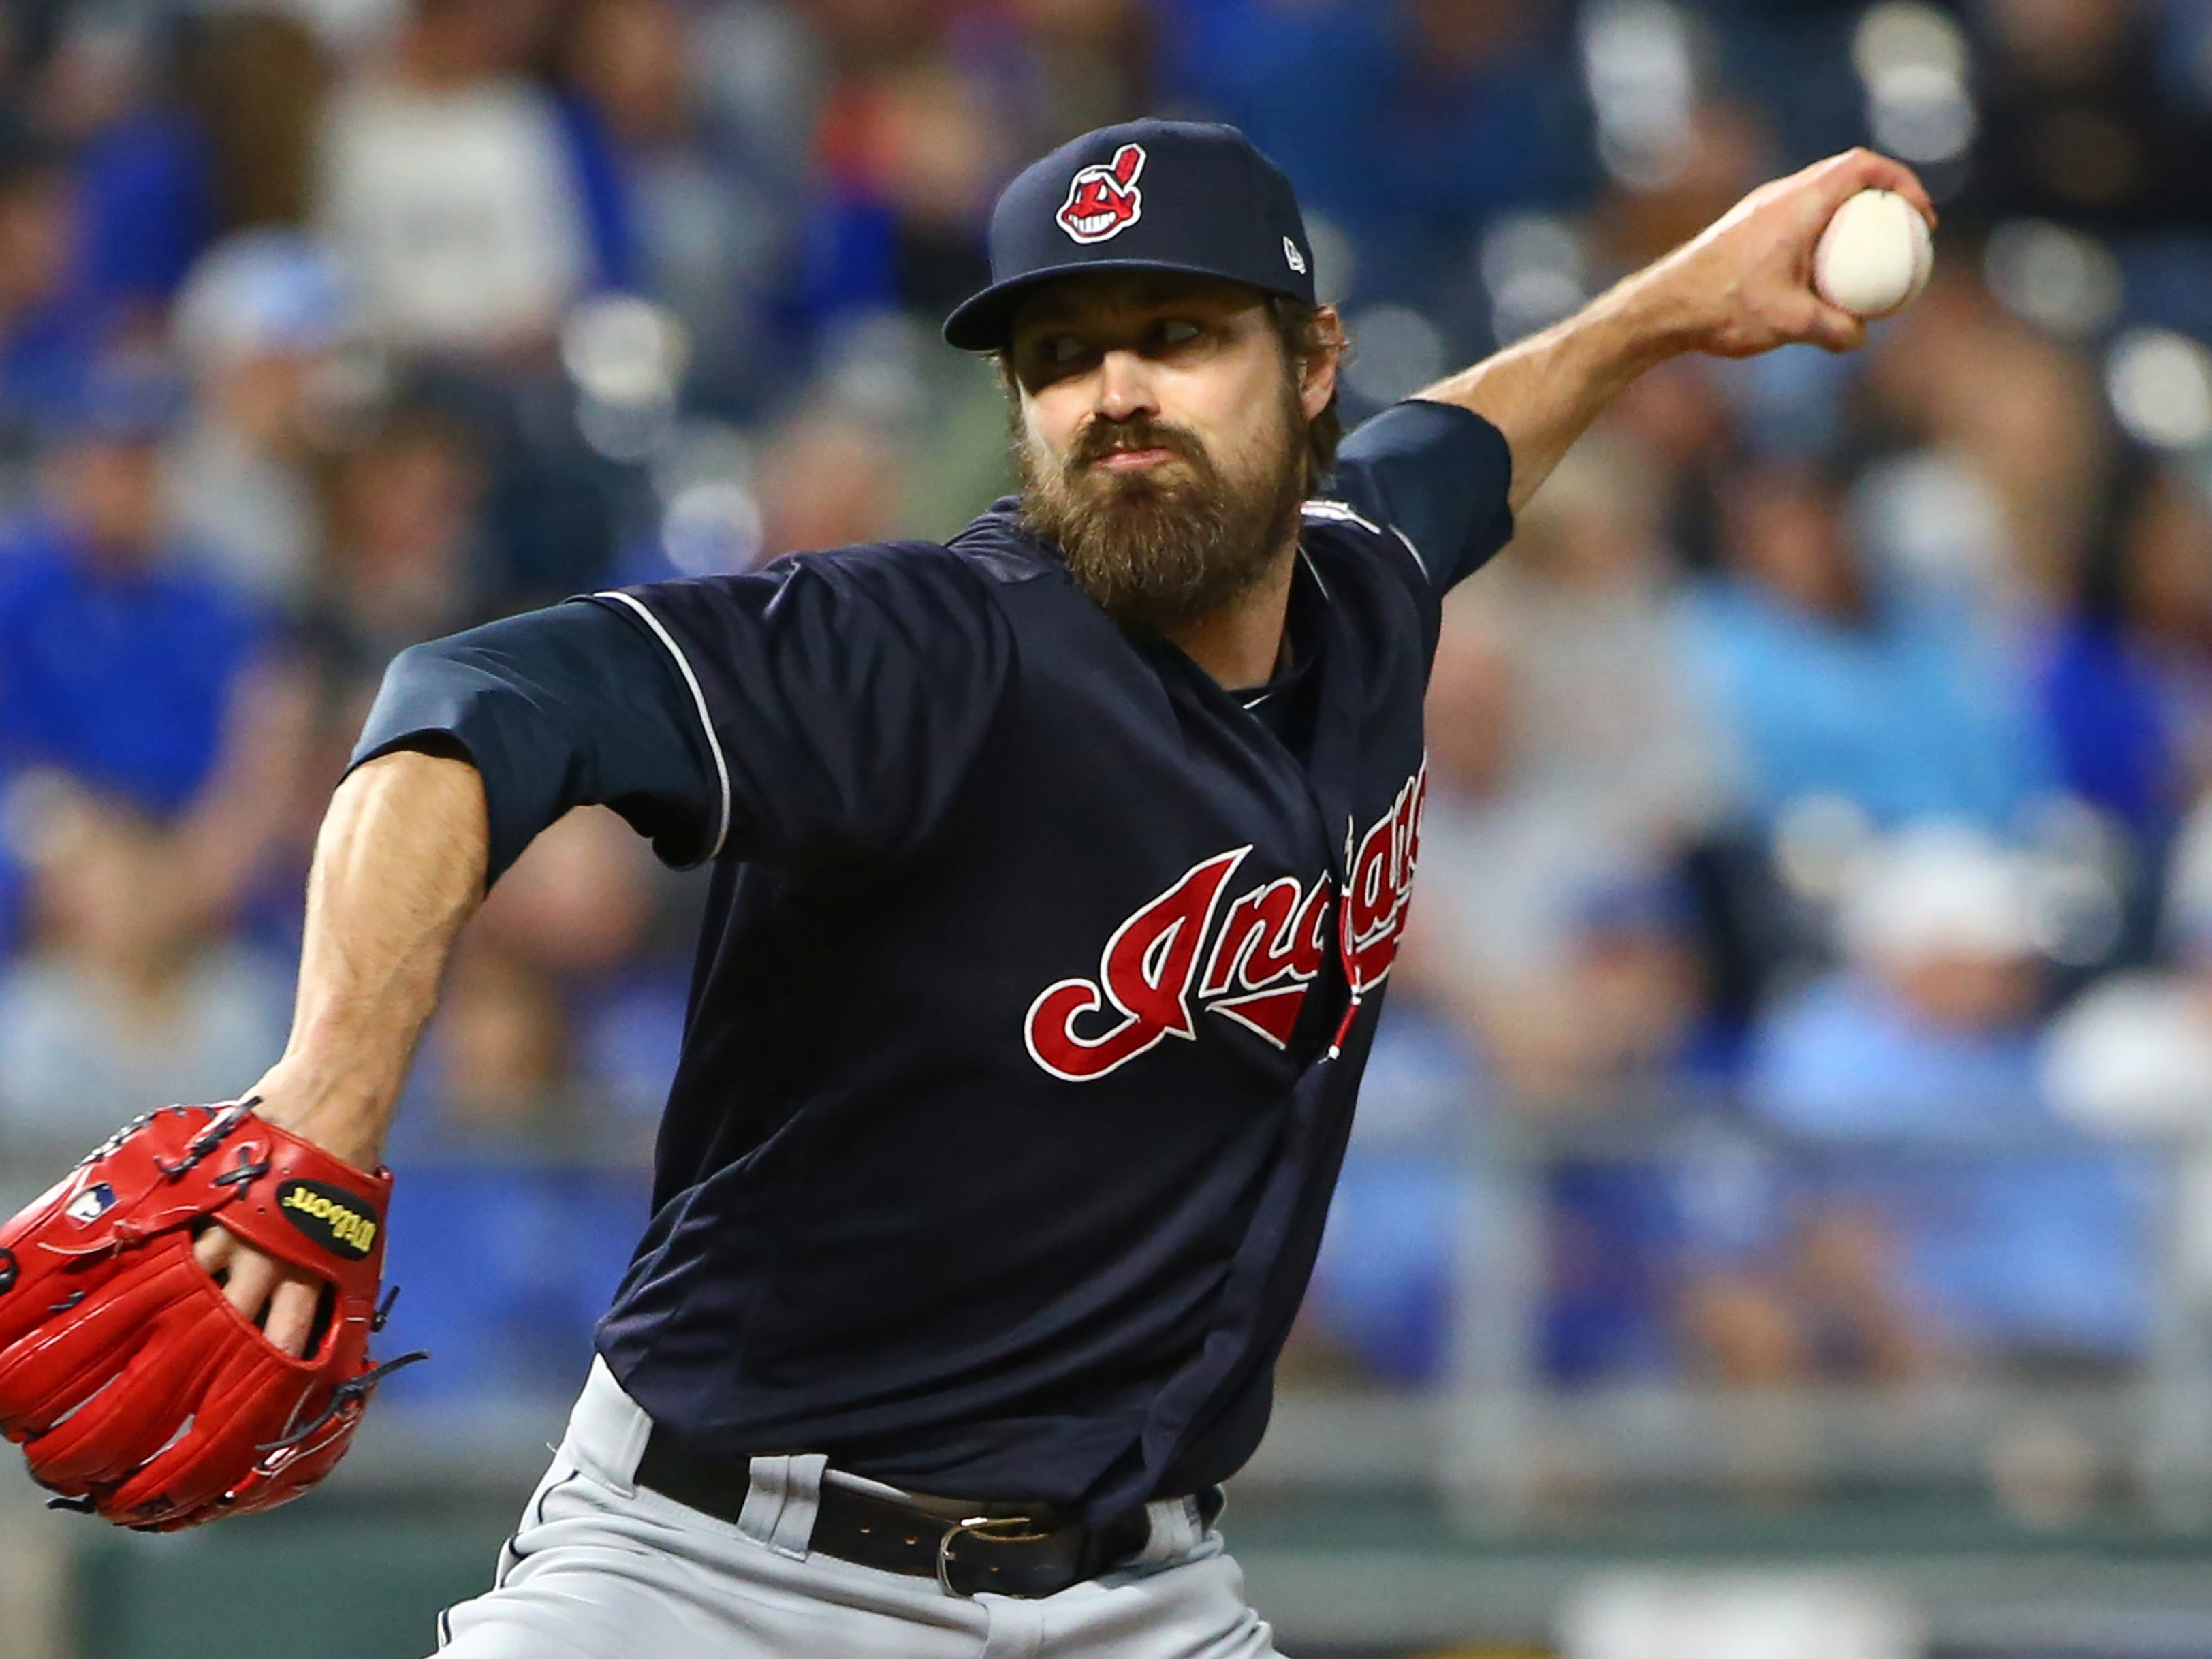 Andrew Miller (33, LHP, Indians) – signed with Cardinals, two years/$25 million